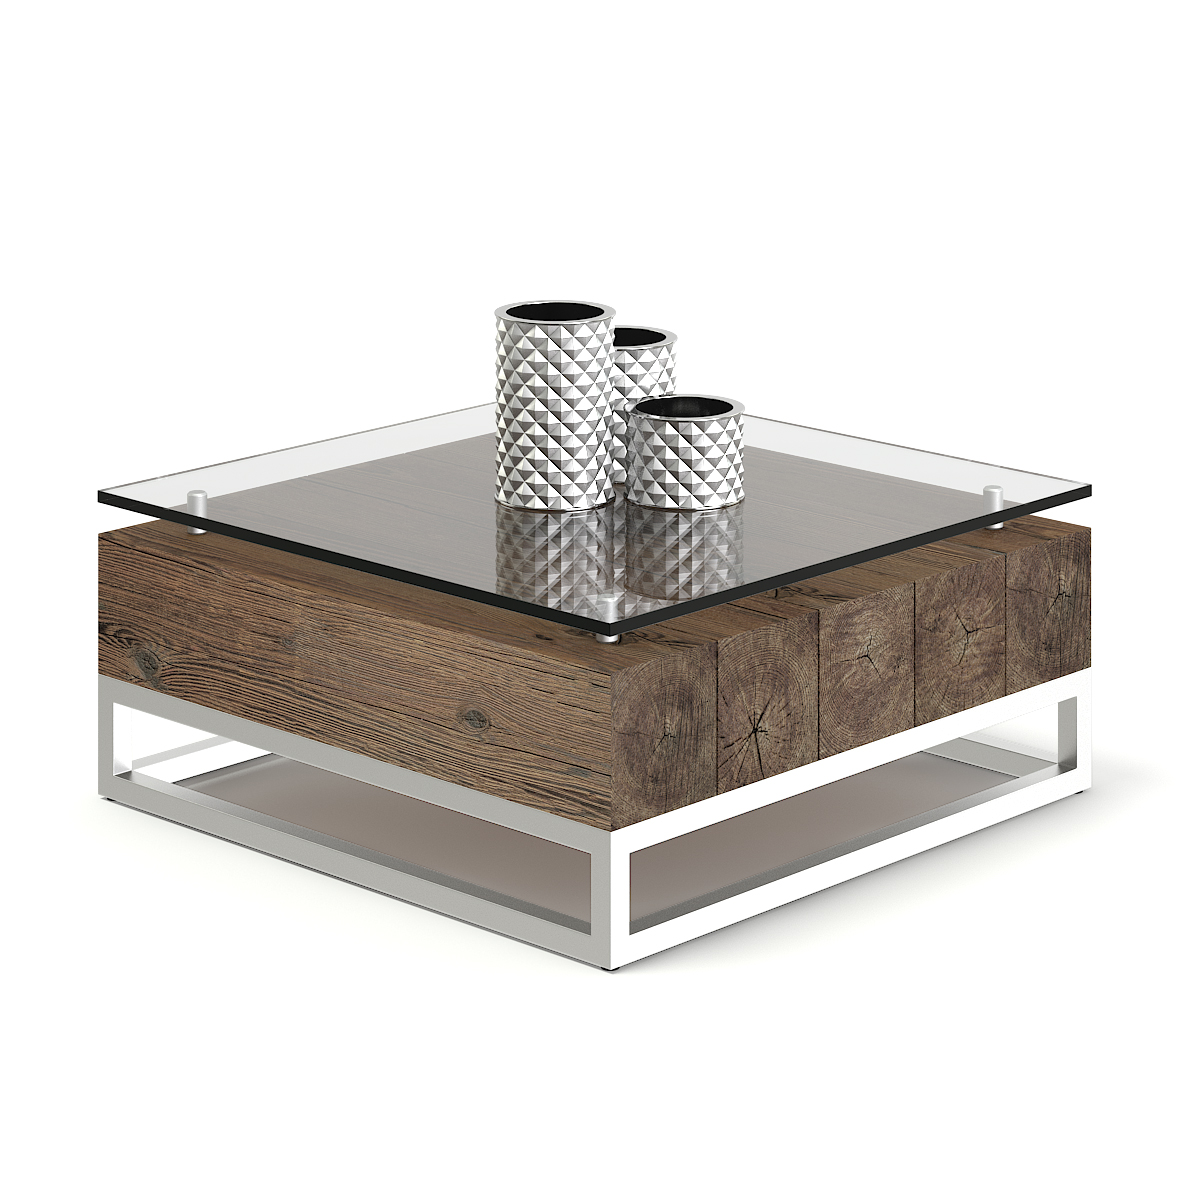 - Wood And Glass Coffee Table 3D Model – CGAxis 3D Models Store